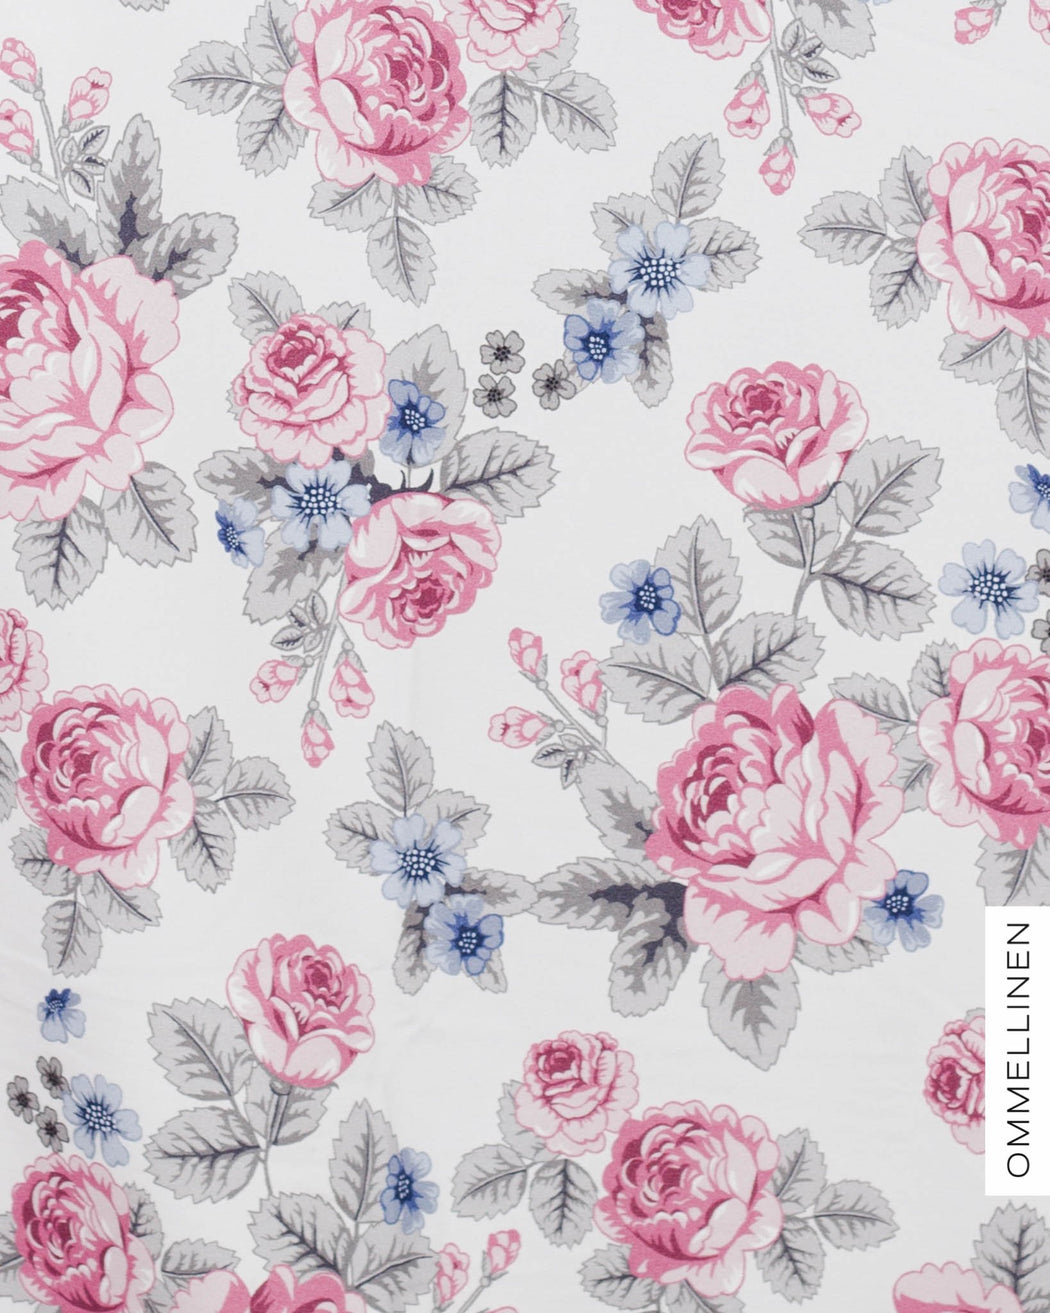 Baby Babushka Roses Stretch French Terry, Pink-Blue by Ommellinen